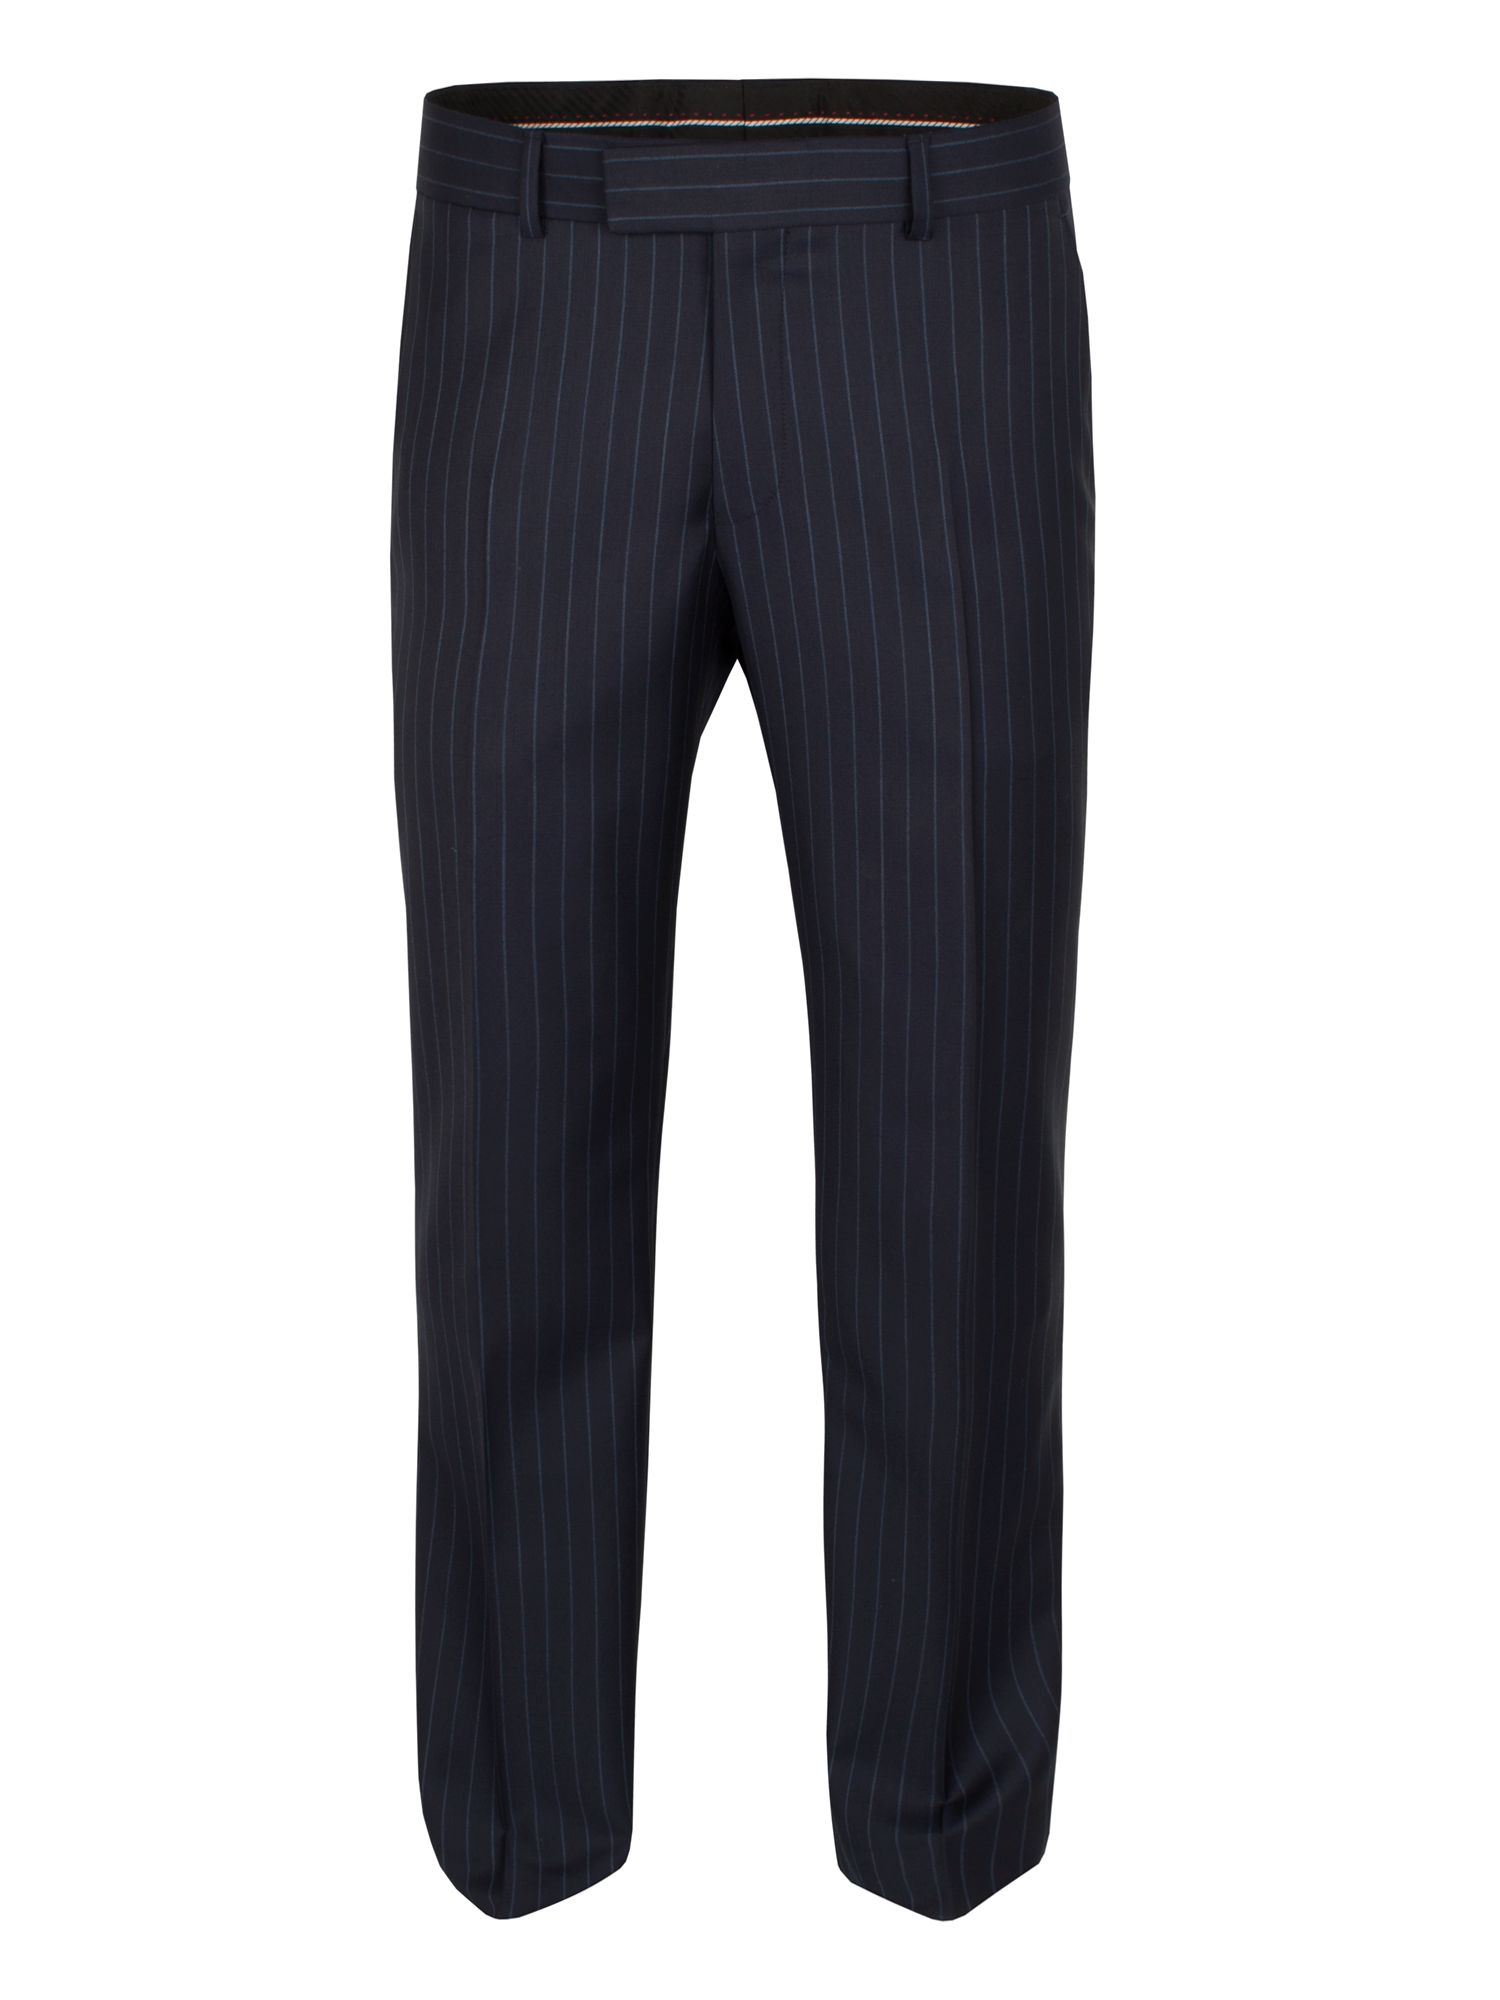 Navy blue stripe trouser